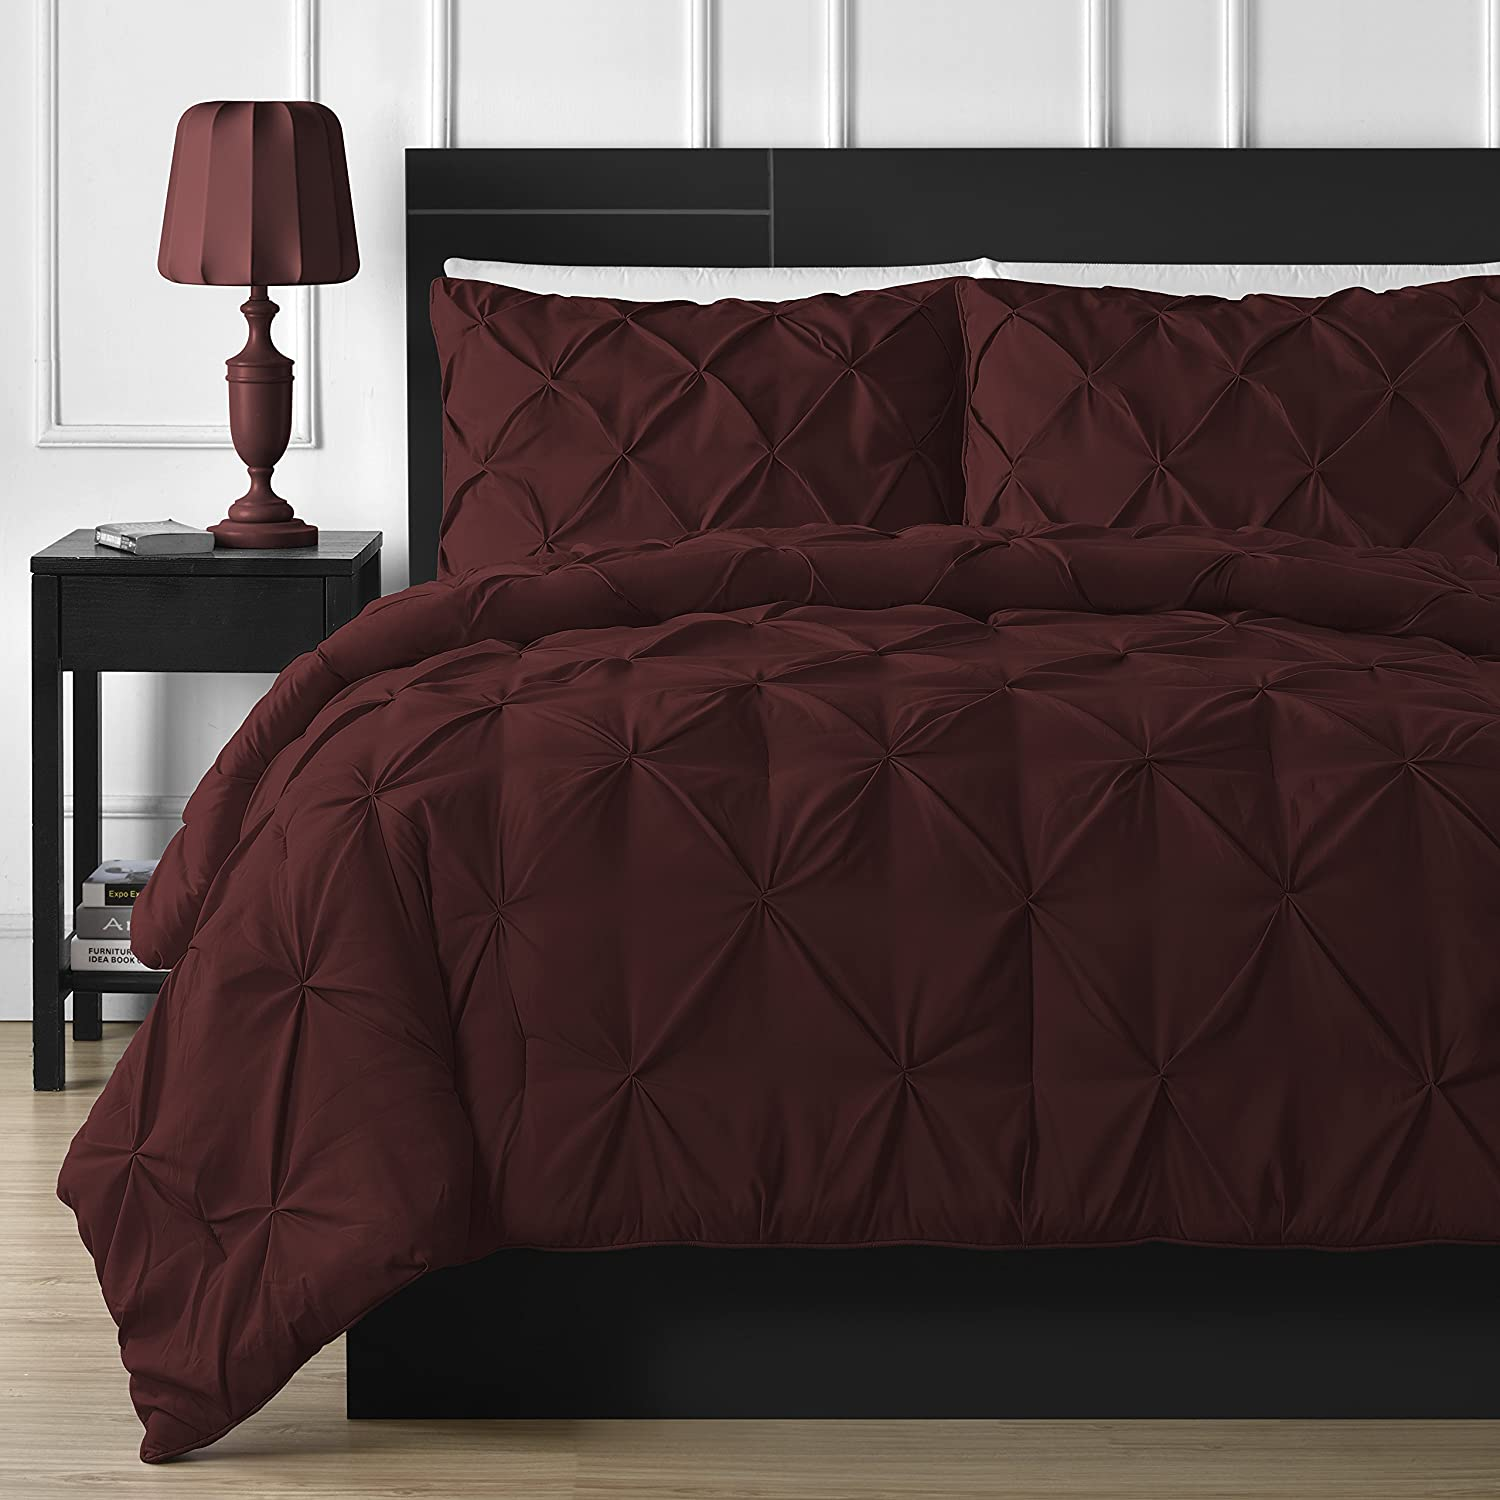 3-Piece Pinch Pleat Comforter Set All Season Pintuck Style, Queen, Burgundy